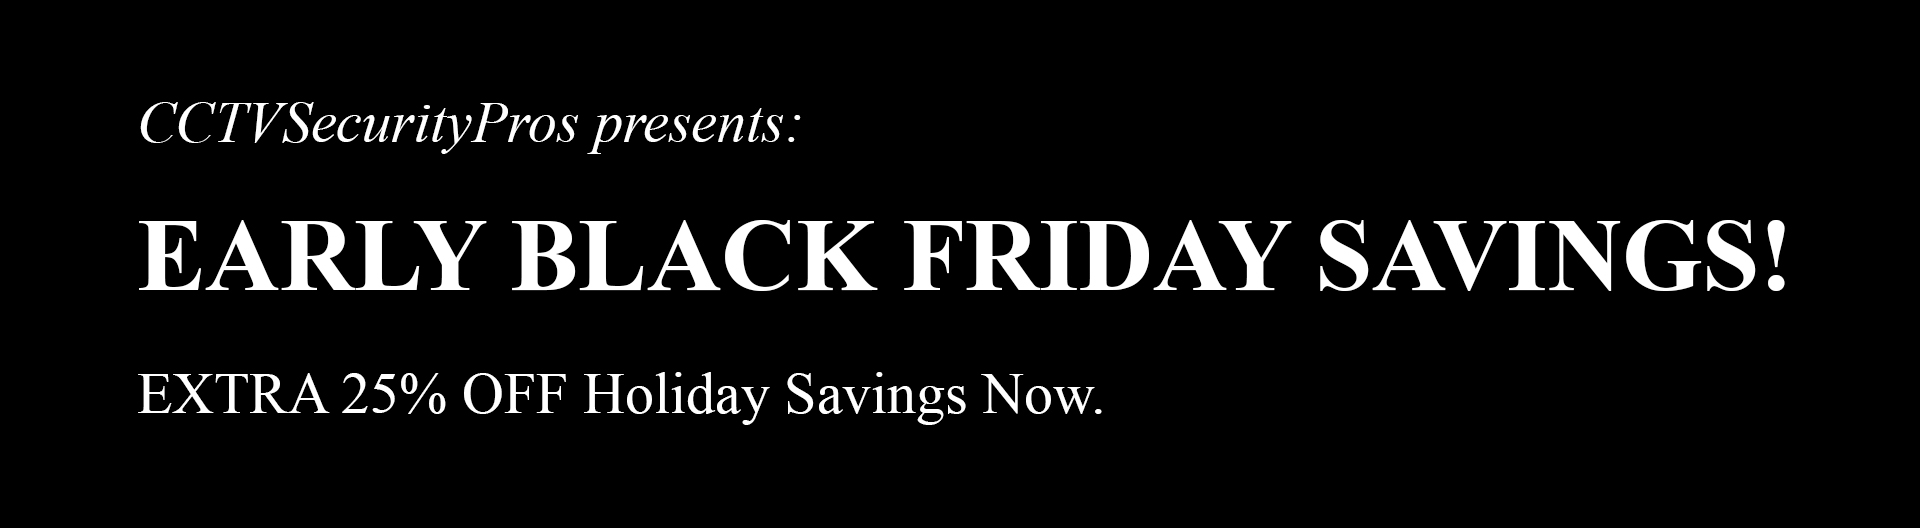 Early Black Friday Savings